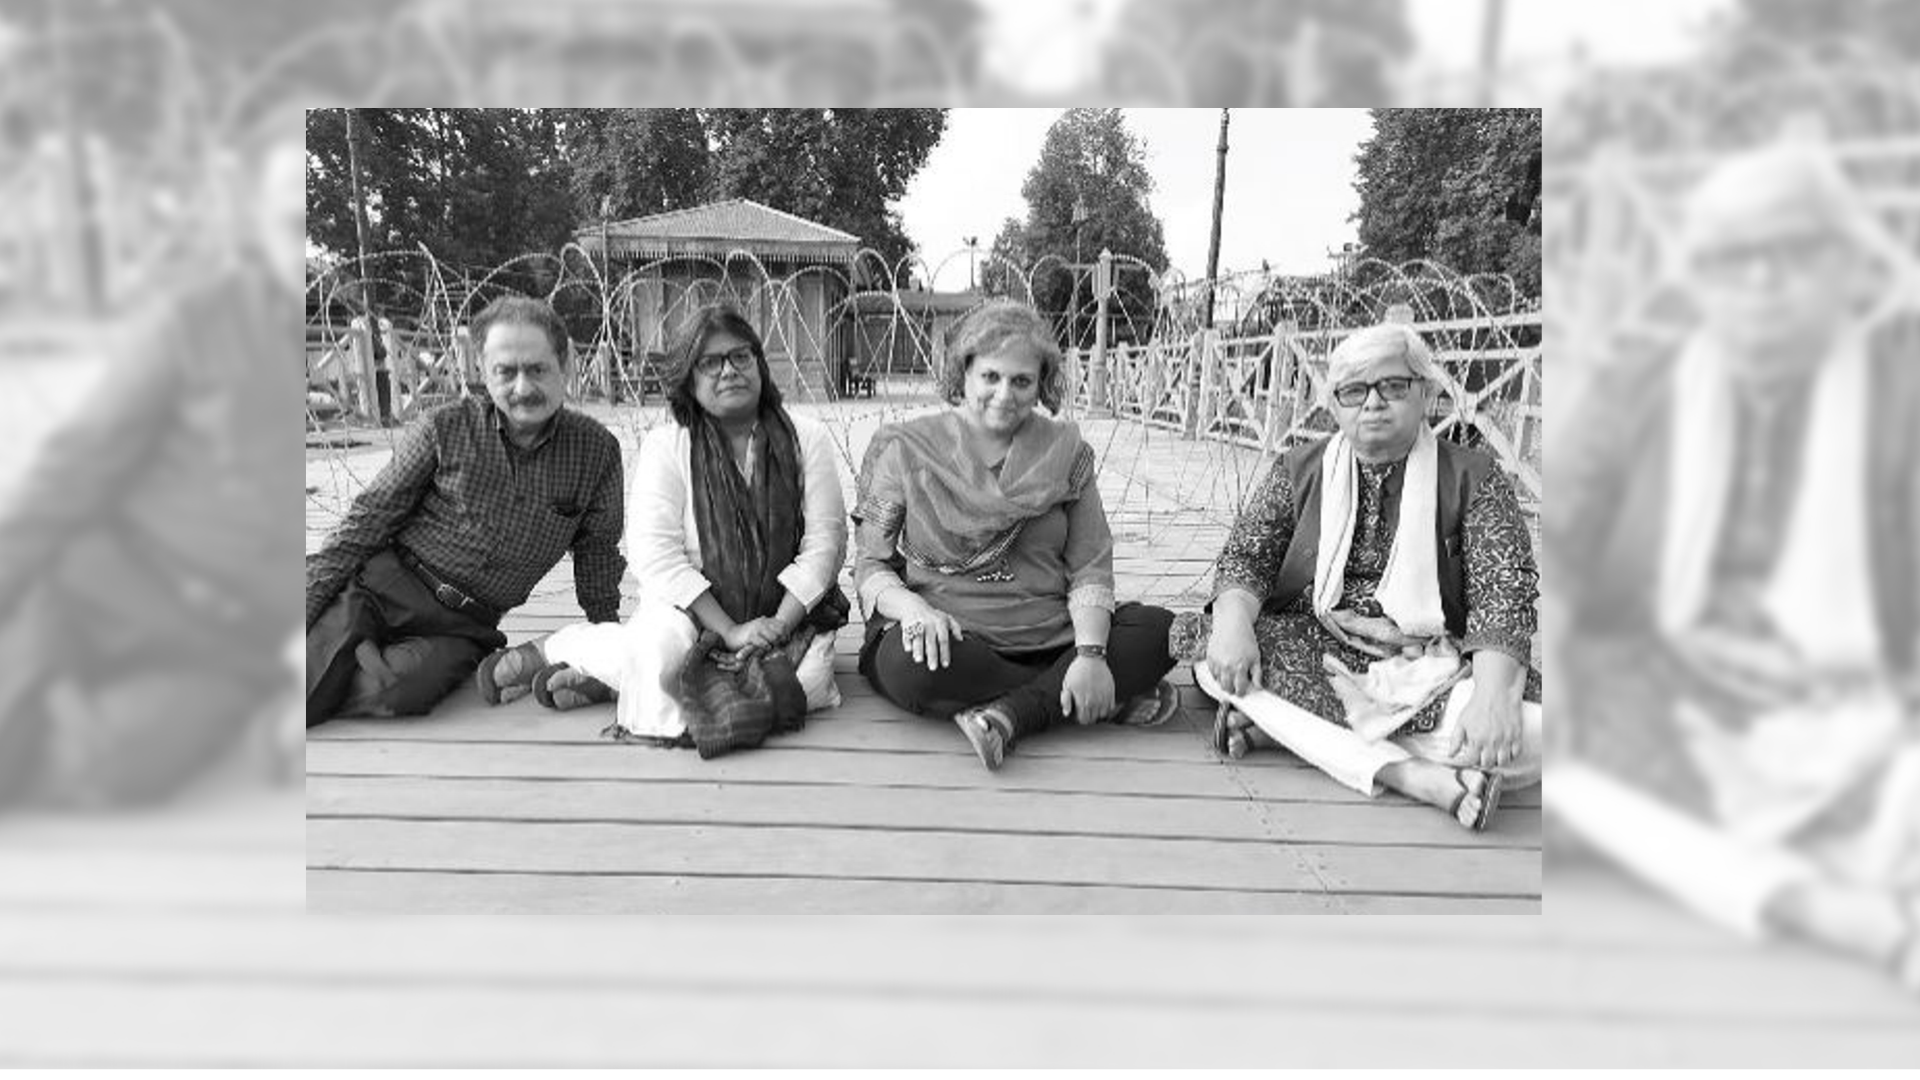 'New Civil Disobedience in Kashmir': Ground Report by 4 Citizens